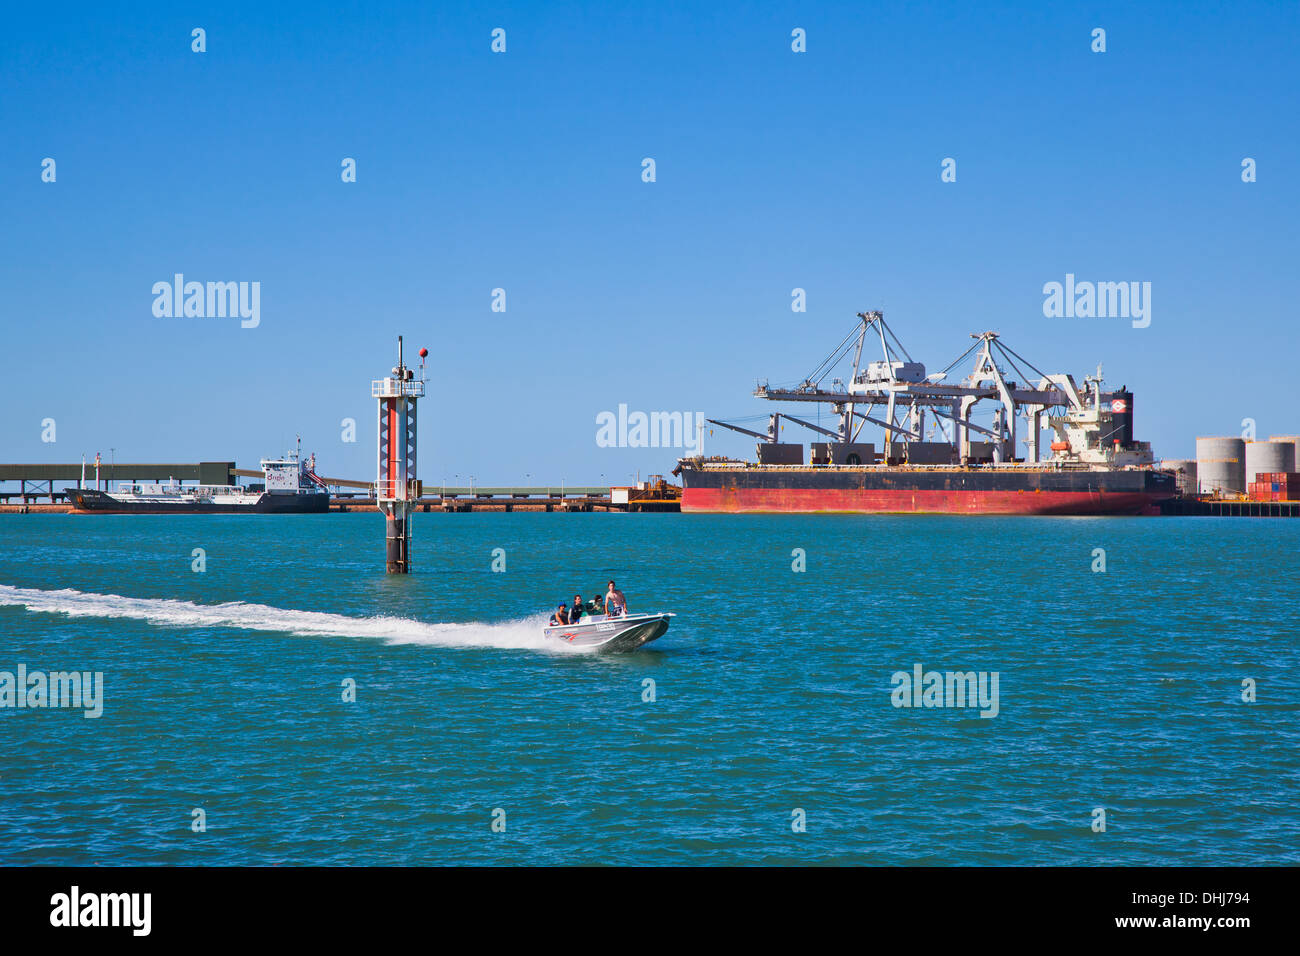 Australia, North Queensland, Port of Townsville, cargo ship at Berth 3 for container and Break Bulk handling - Stock Image